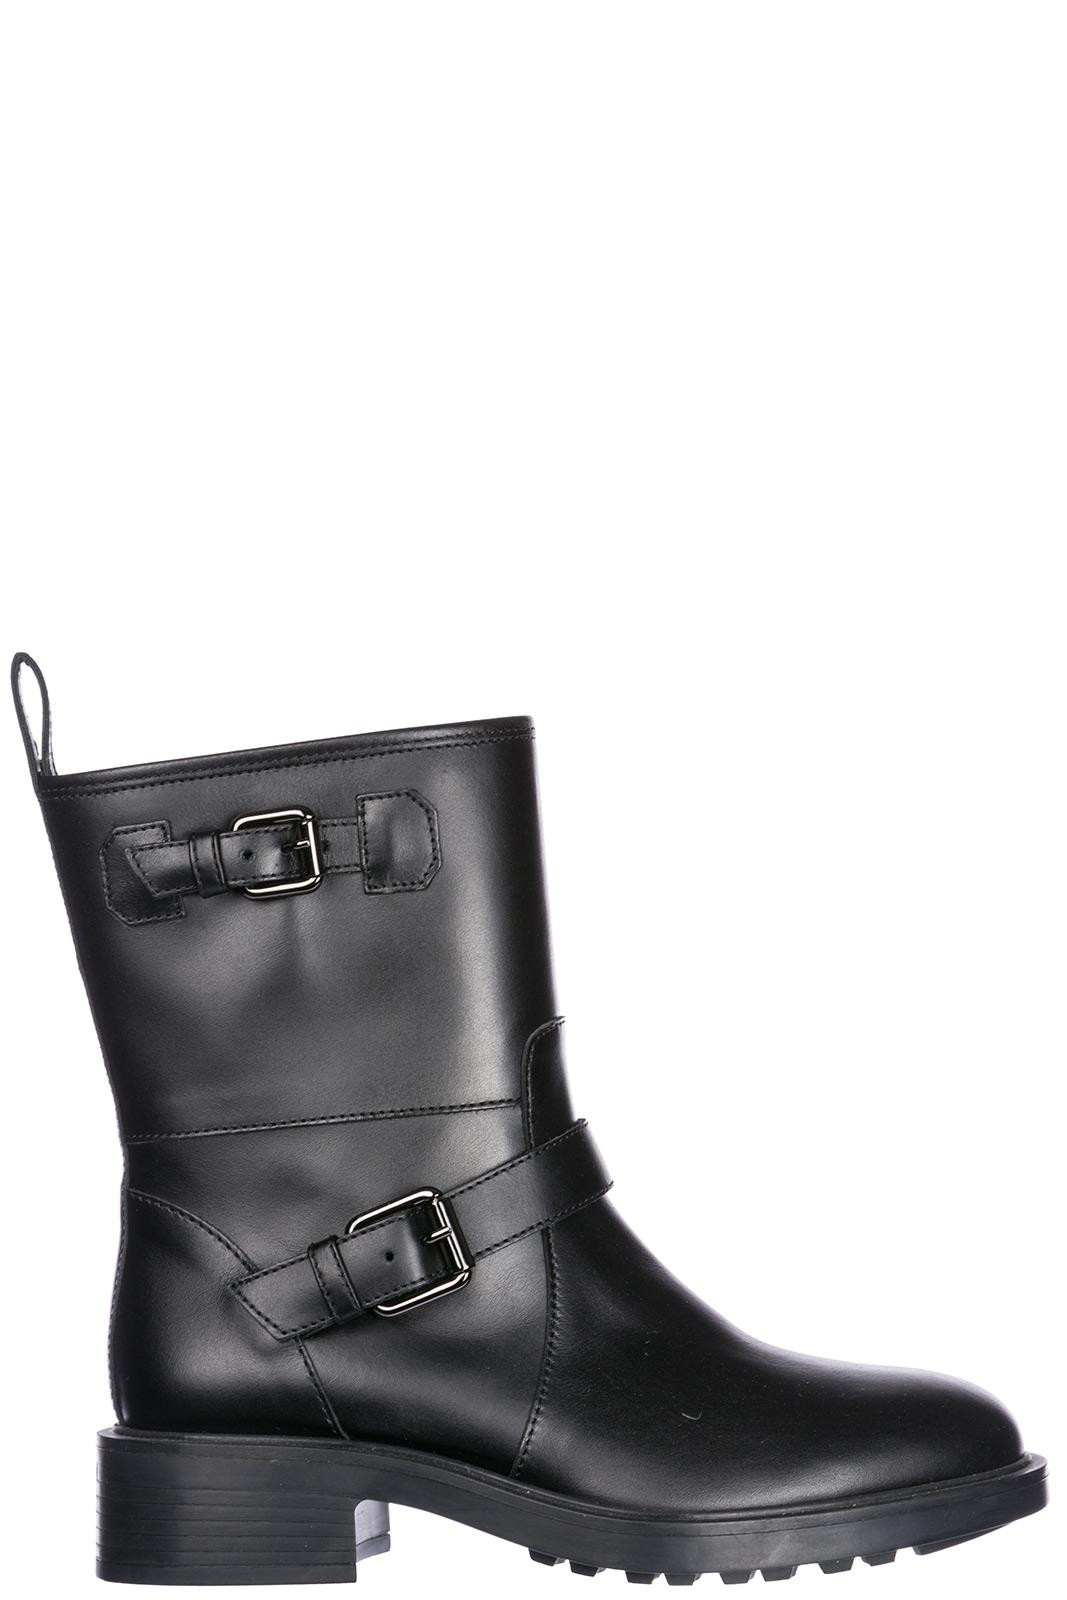 Hogan Women's Leather Ankle Boots Booties In Black